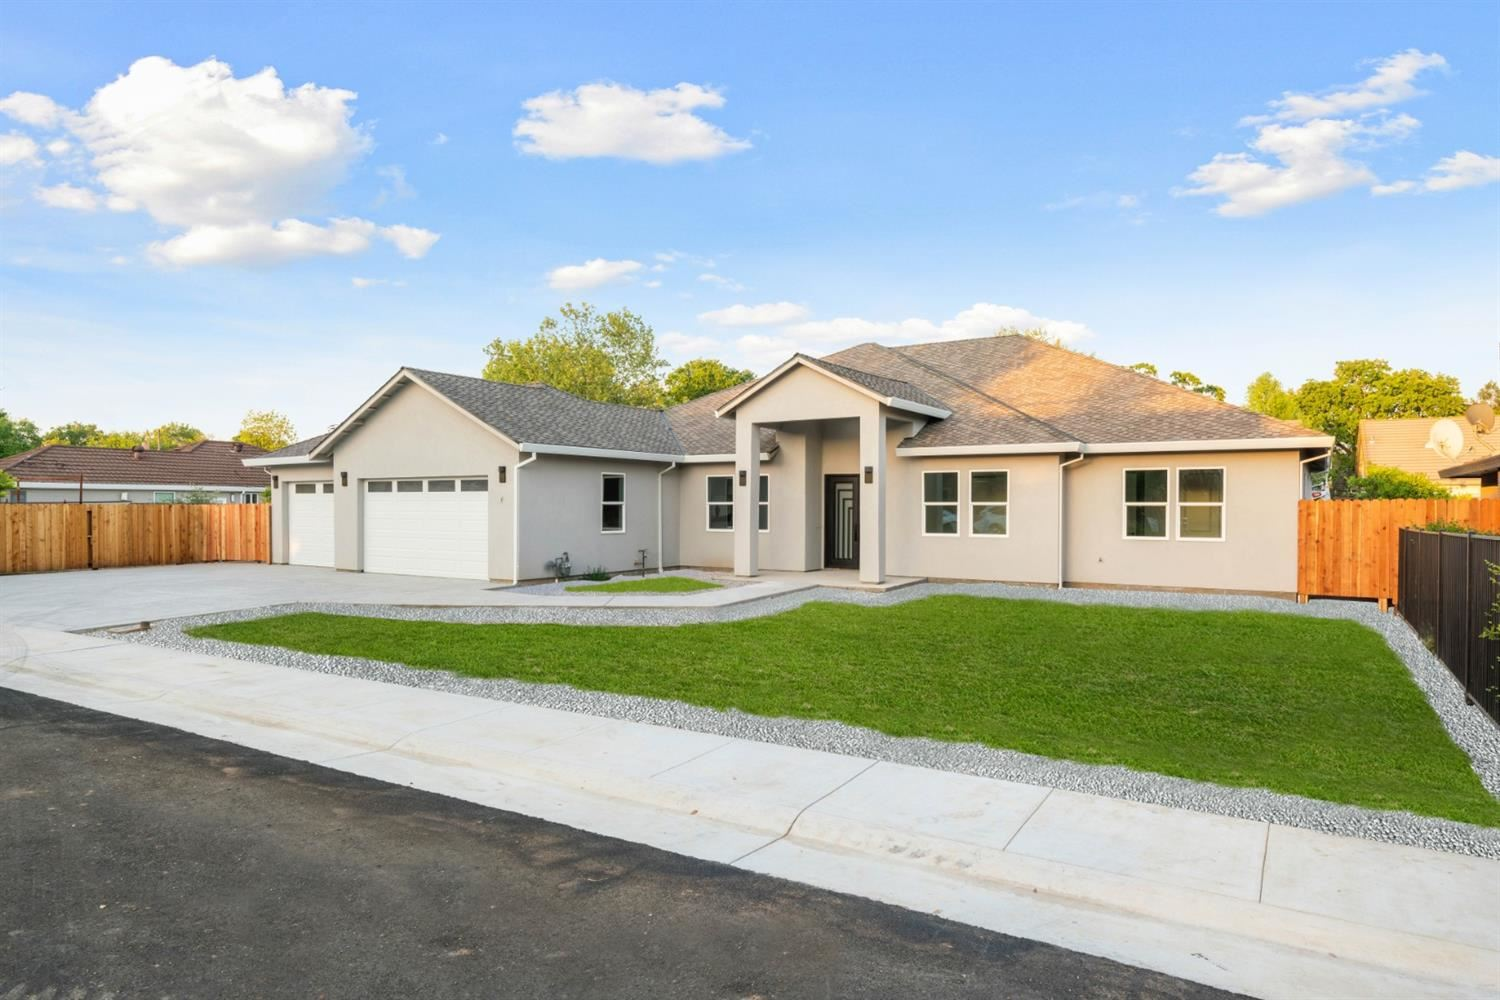 Photo of 1130 Jonas Avenue, Sacramento, CA 95864 (MLS # 221037266)